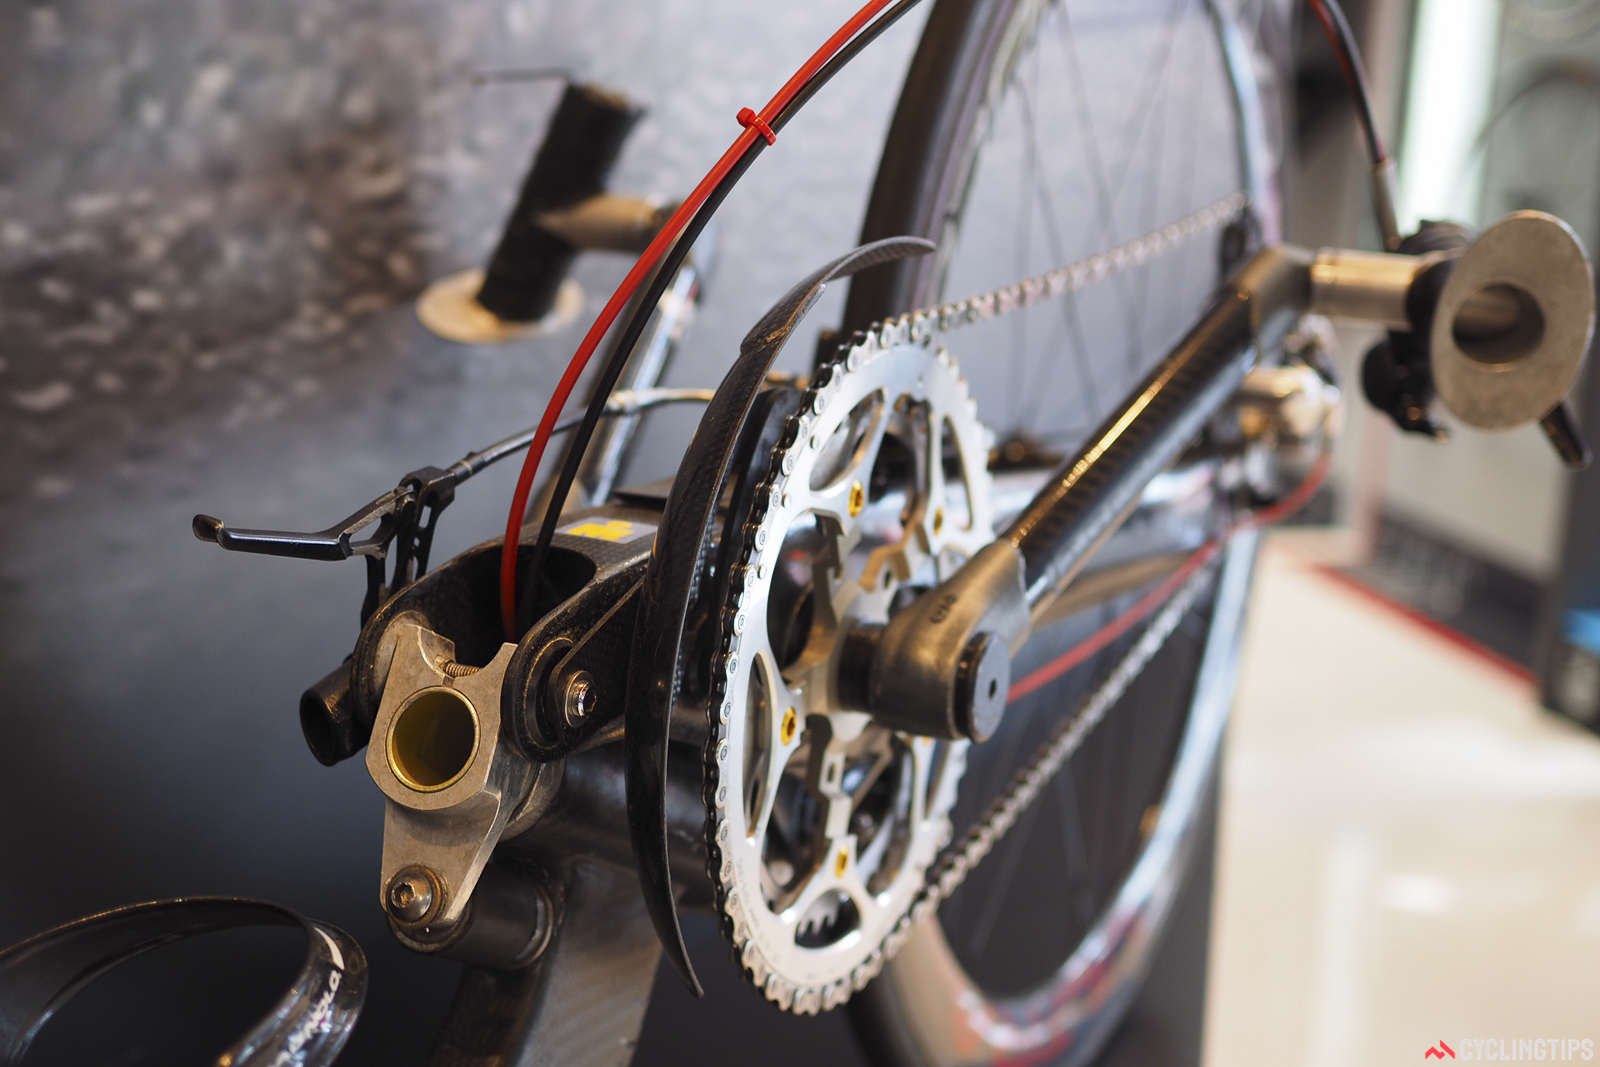 The drivetrain and brake controls are highly custom. Photo: James Huang.